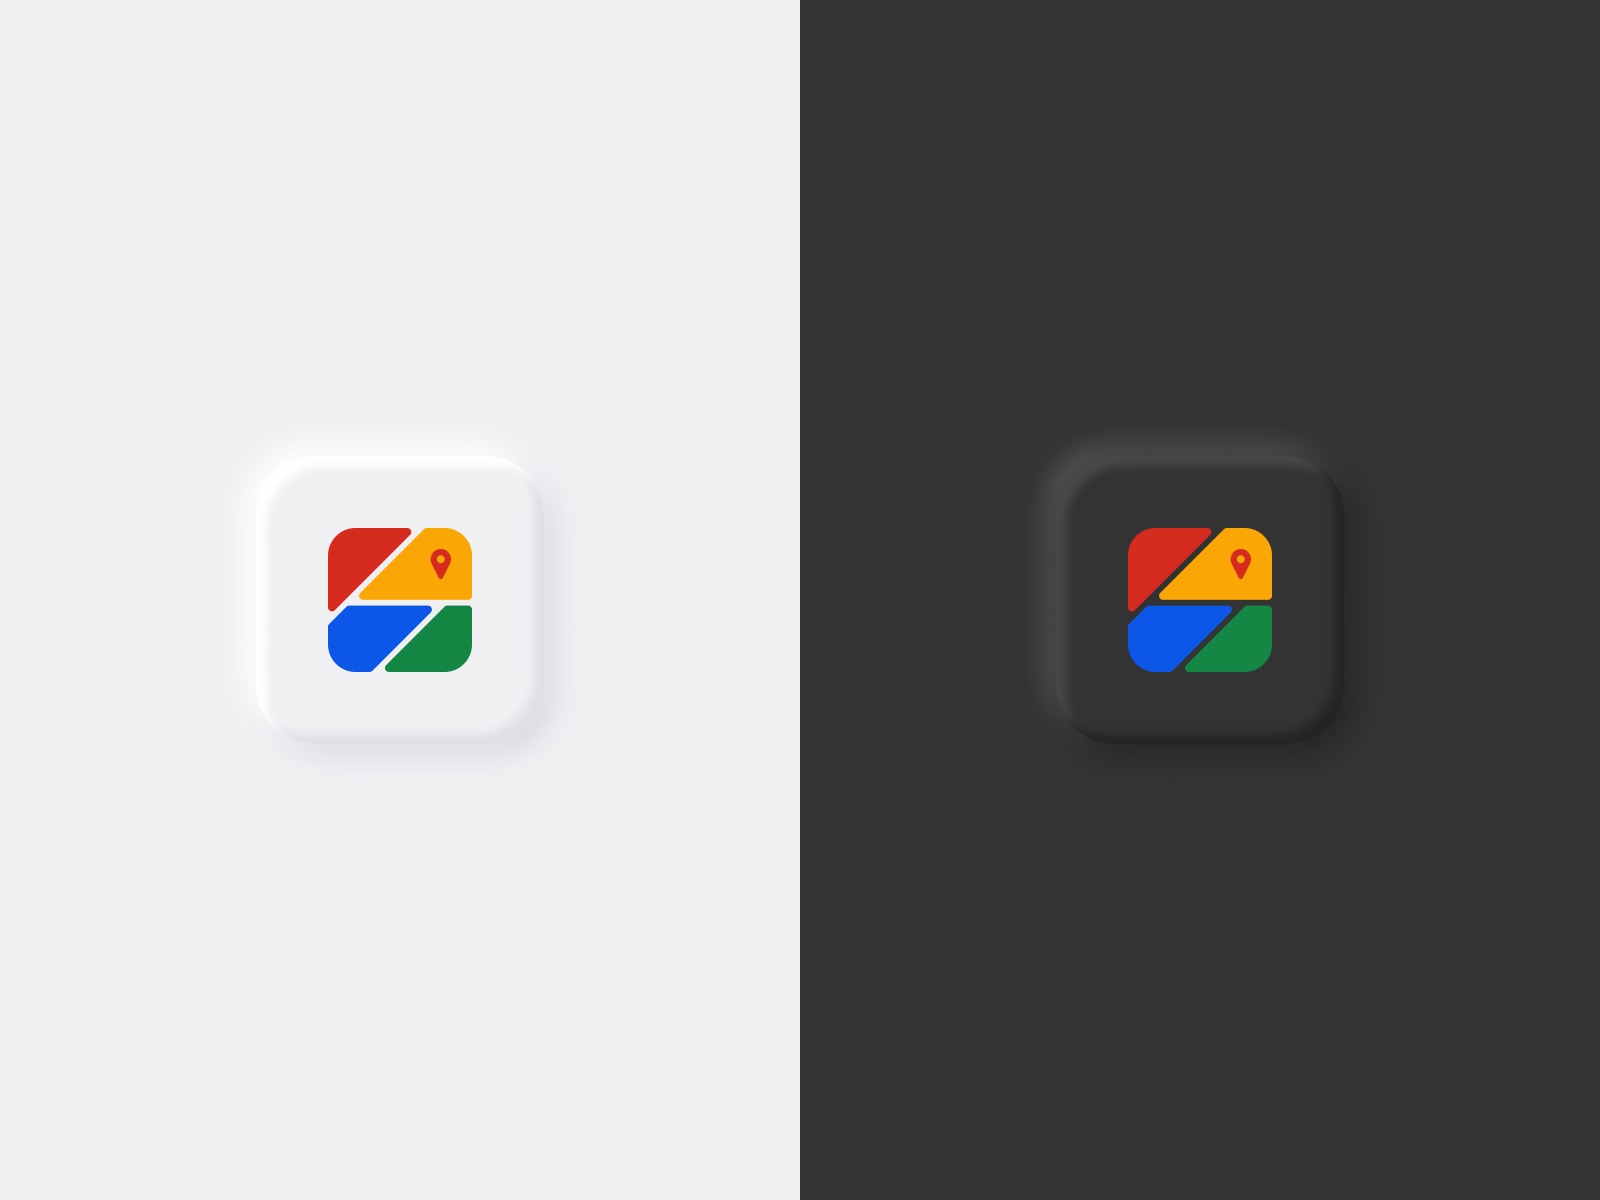 Google Maps App Icon Redesign By Afif Bazit On Dribbble